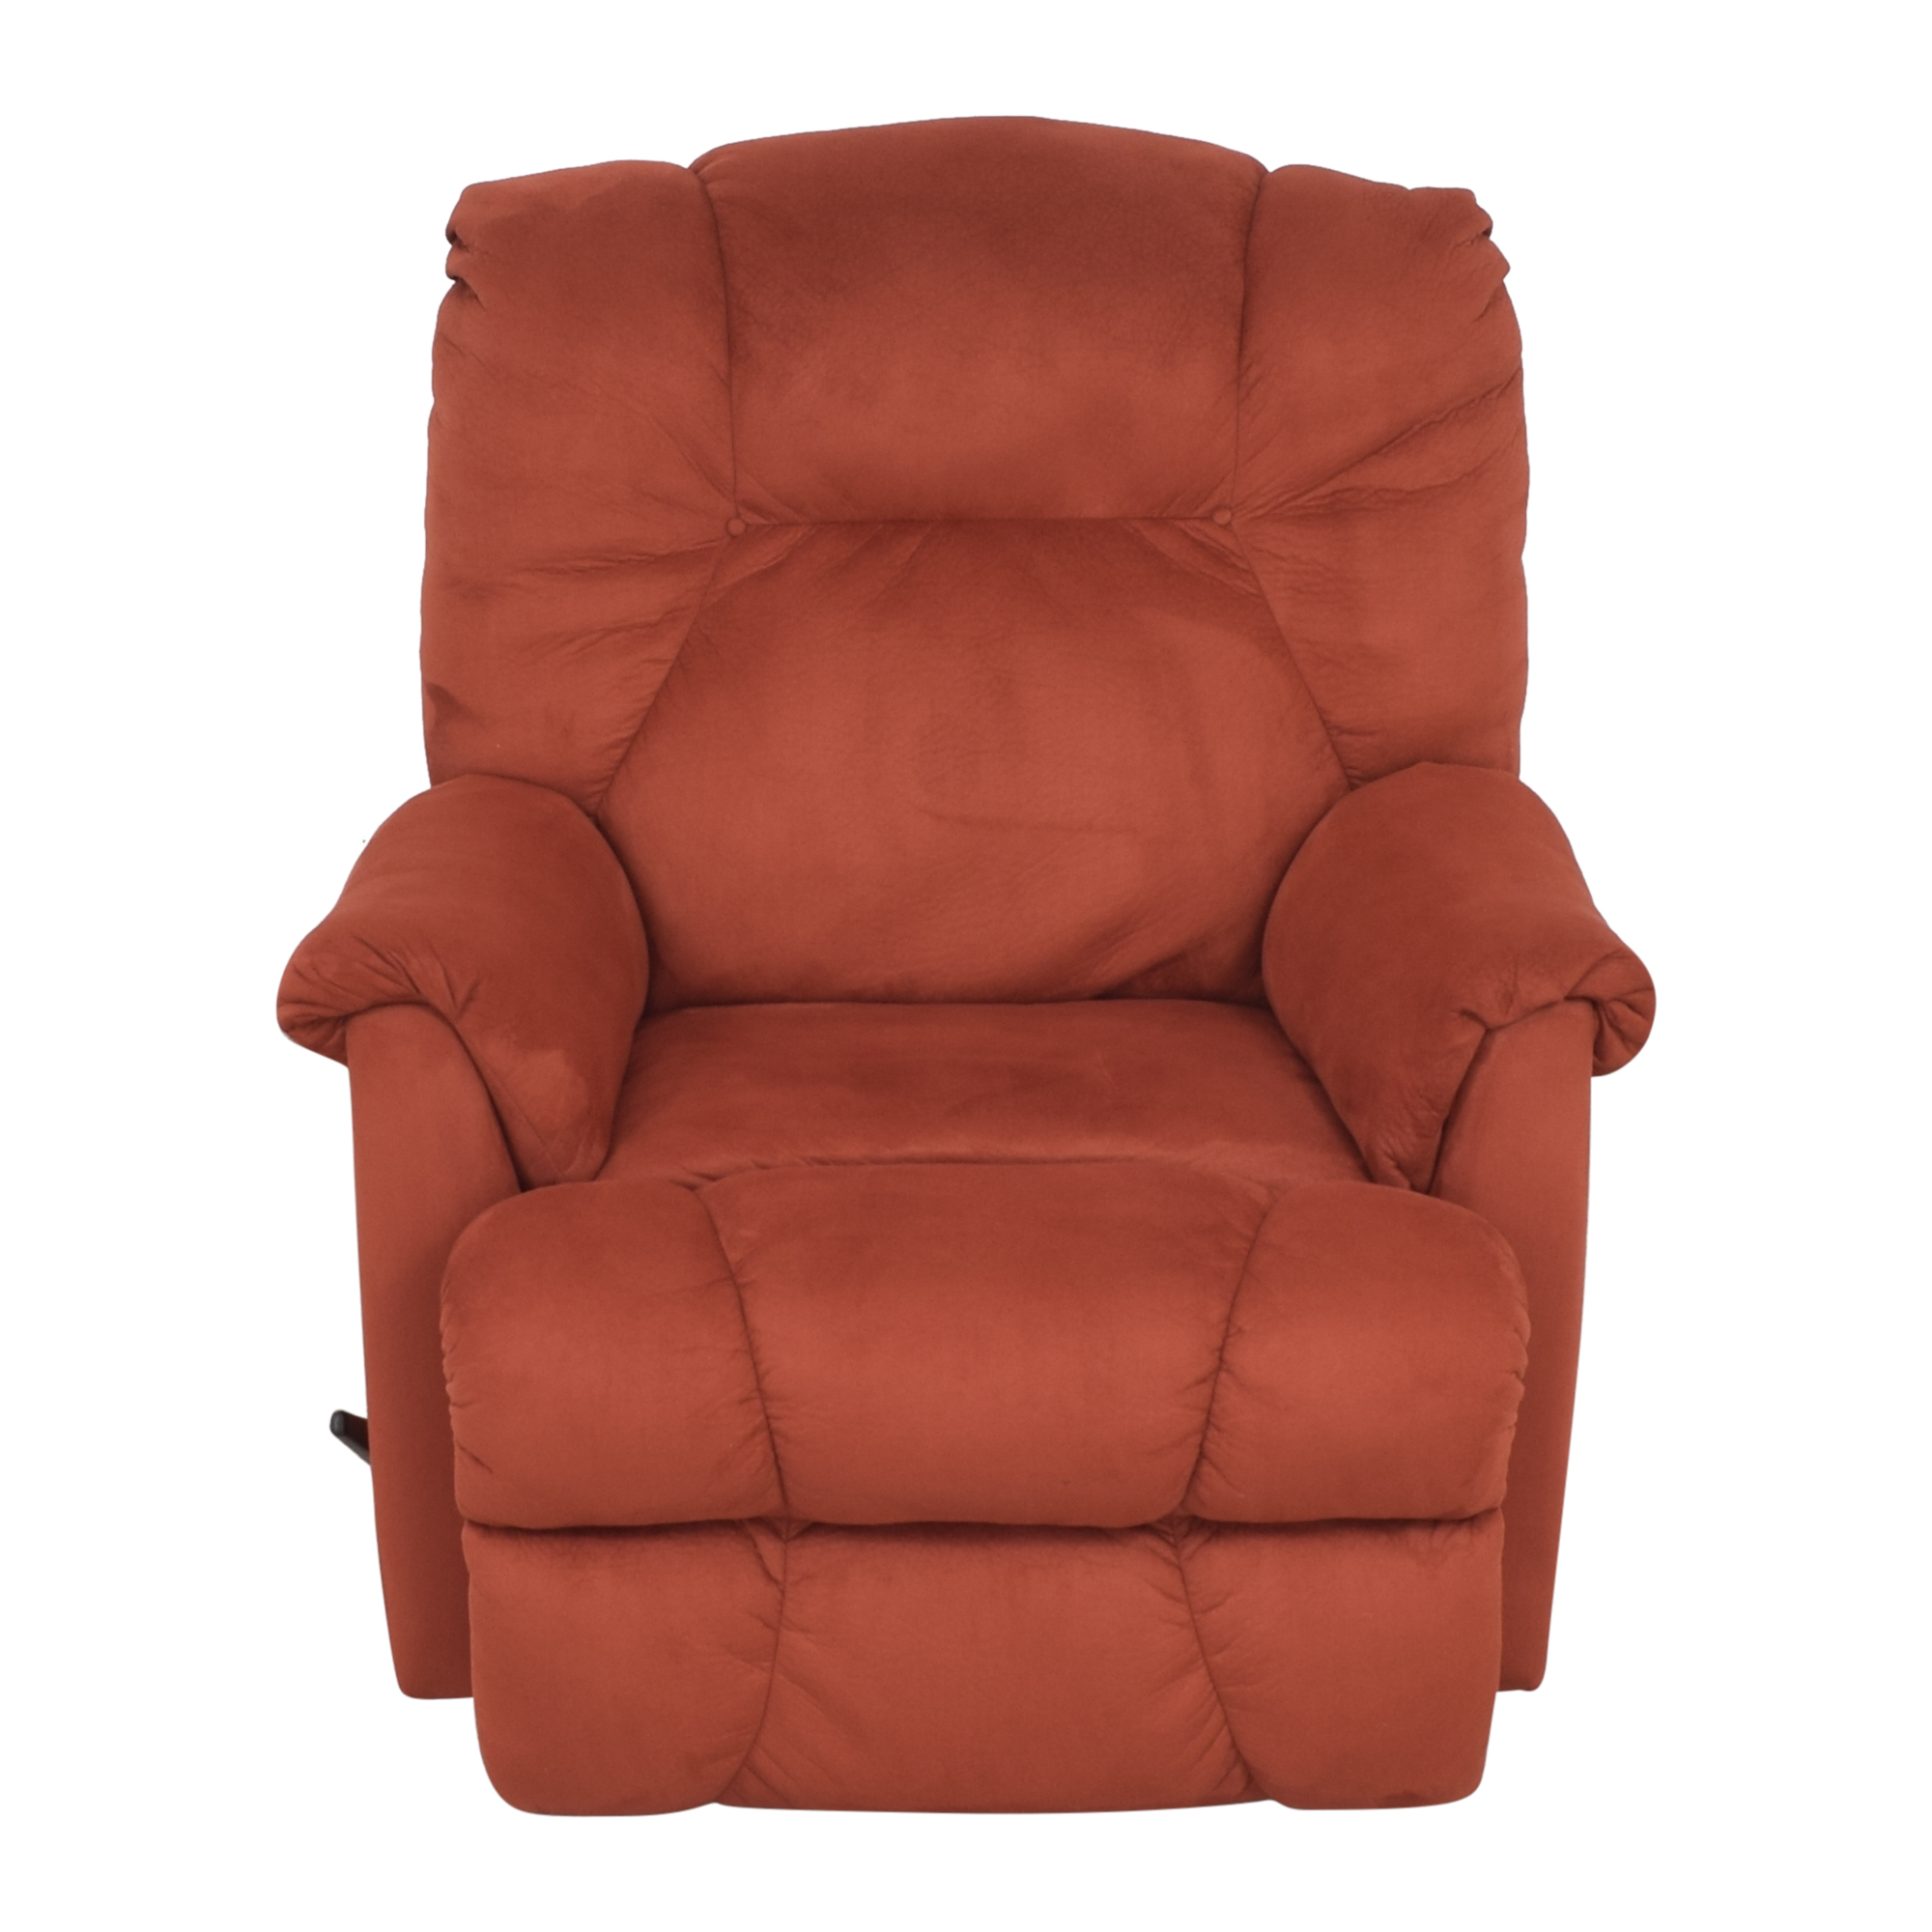 Lane Furniture Lane Furniture Recliner Chair second hand